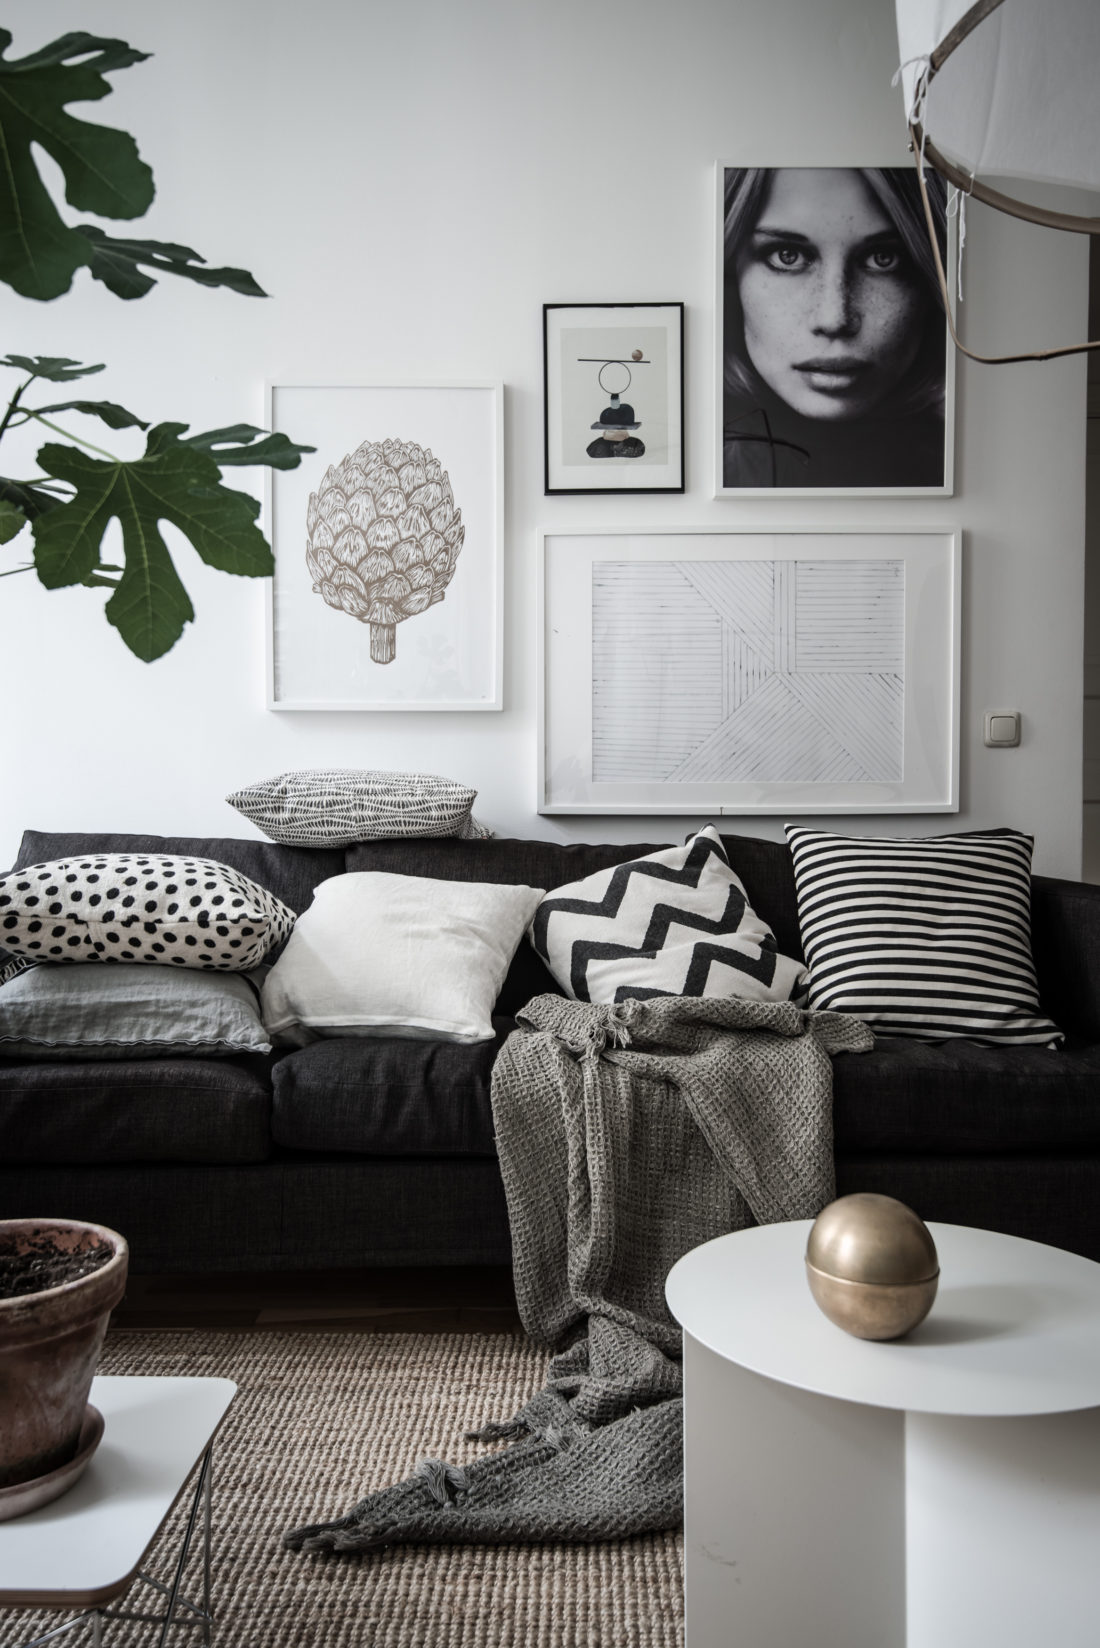 8 clever small living room ideas (with Scandi style) - DIY ... on Small Living Room Decor Ideas  id=18404